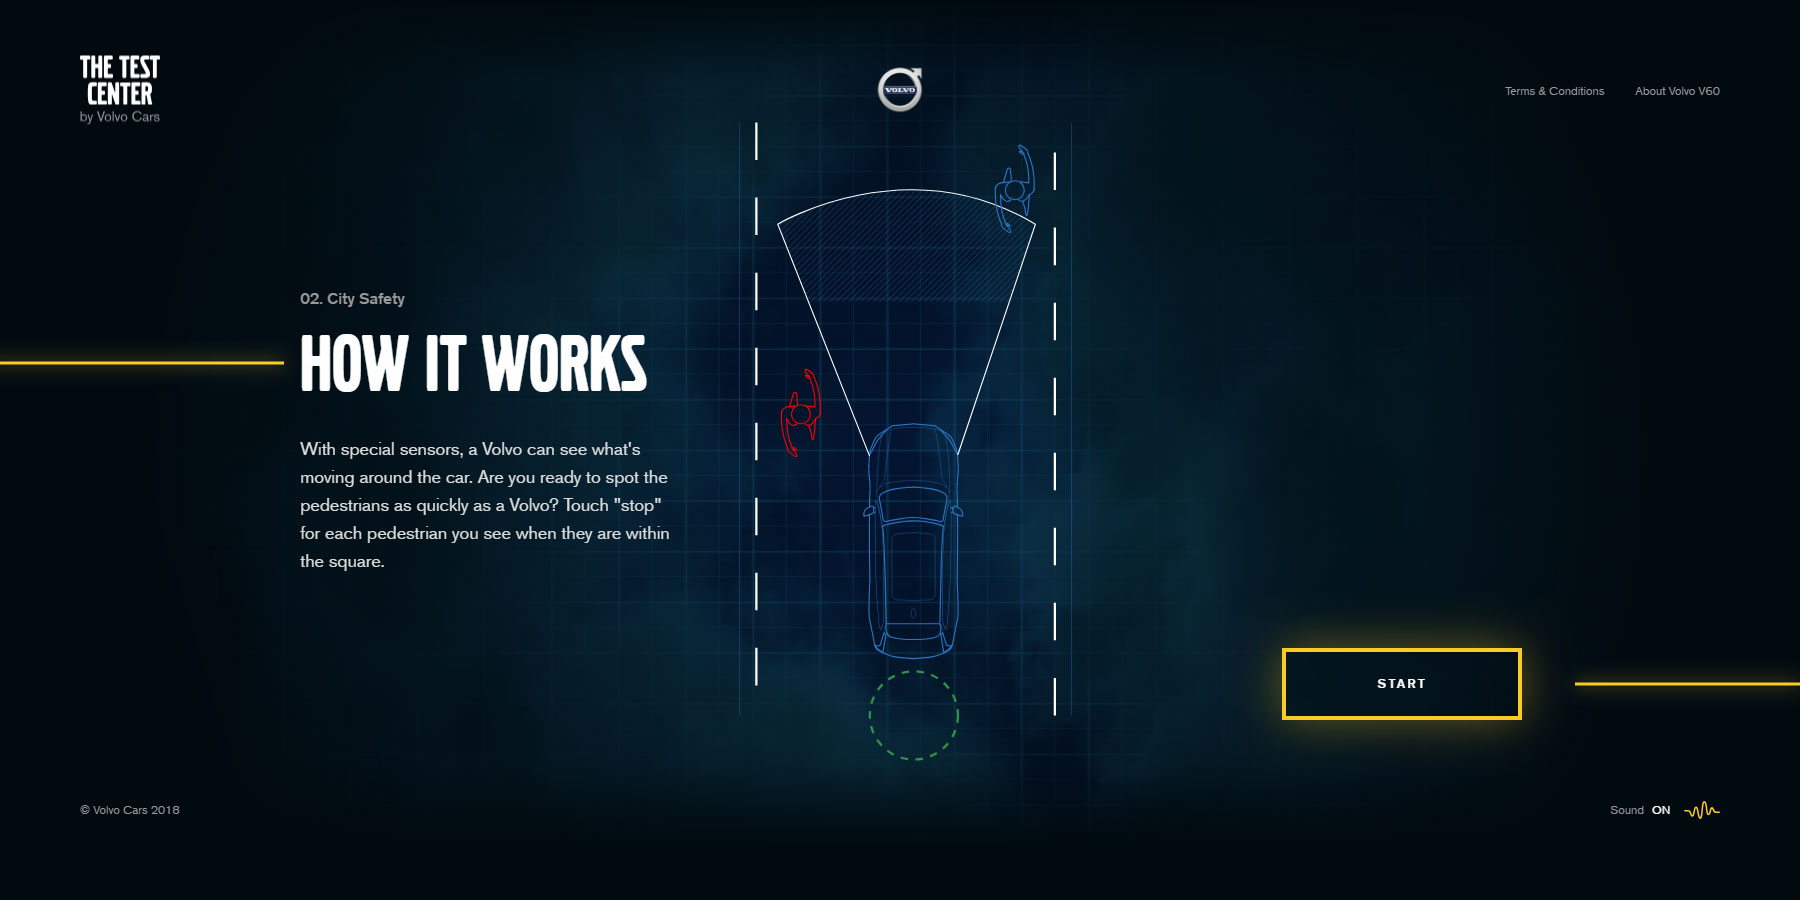 The Test Center by Volvo Cars - Website of the Day